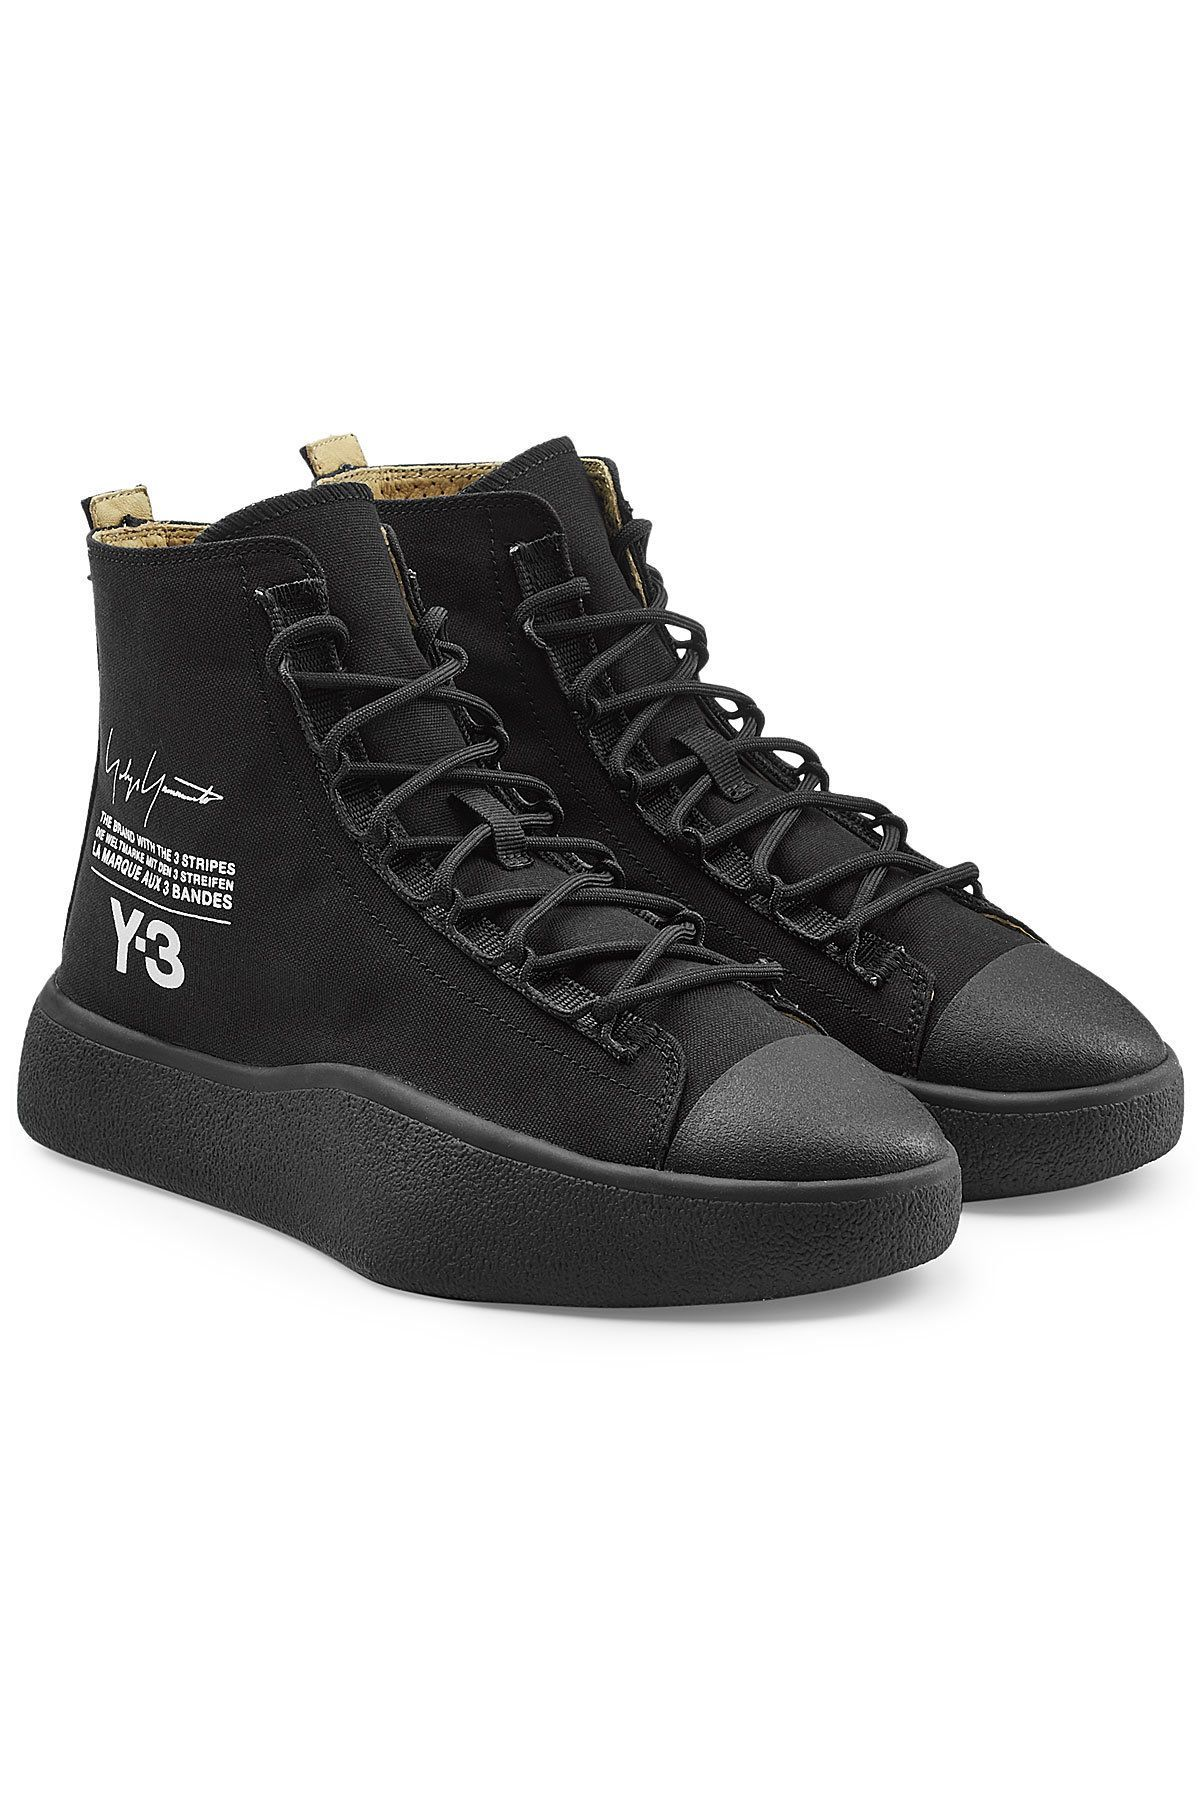 feae88e58 ADIDAS Y-3 .  adidasy-3  shoes    Sneakers